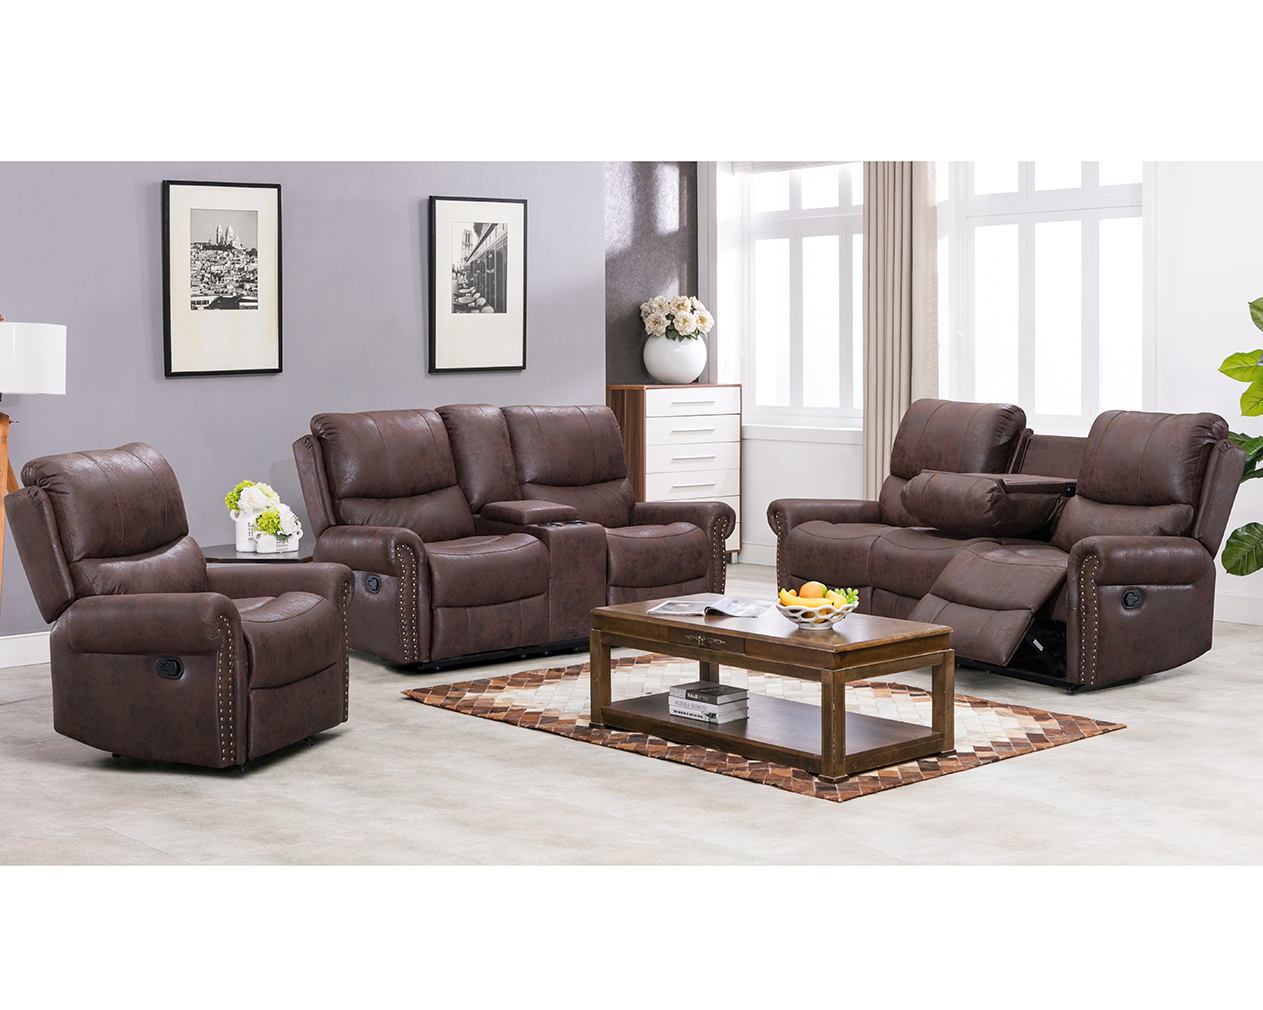 Product Image Recliner Sofa Living Room Set Reclining Couch Sofa Chair  Leather Loveseat 3 Seater Home Theater Seating